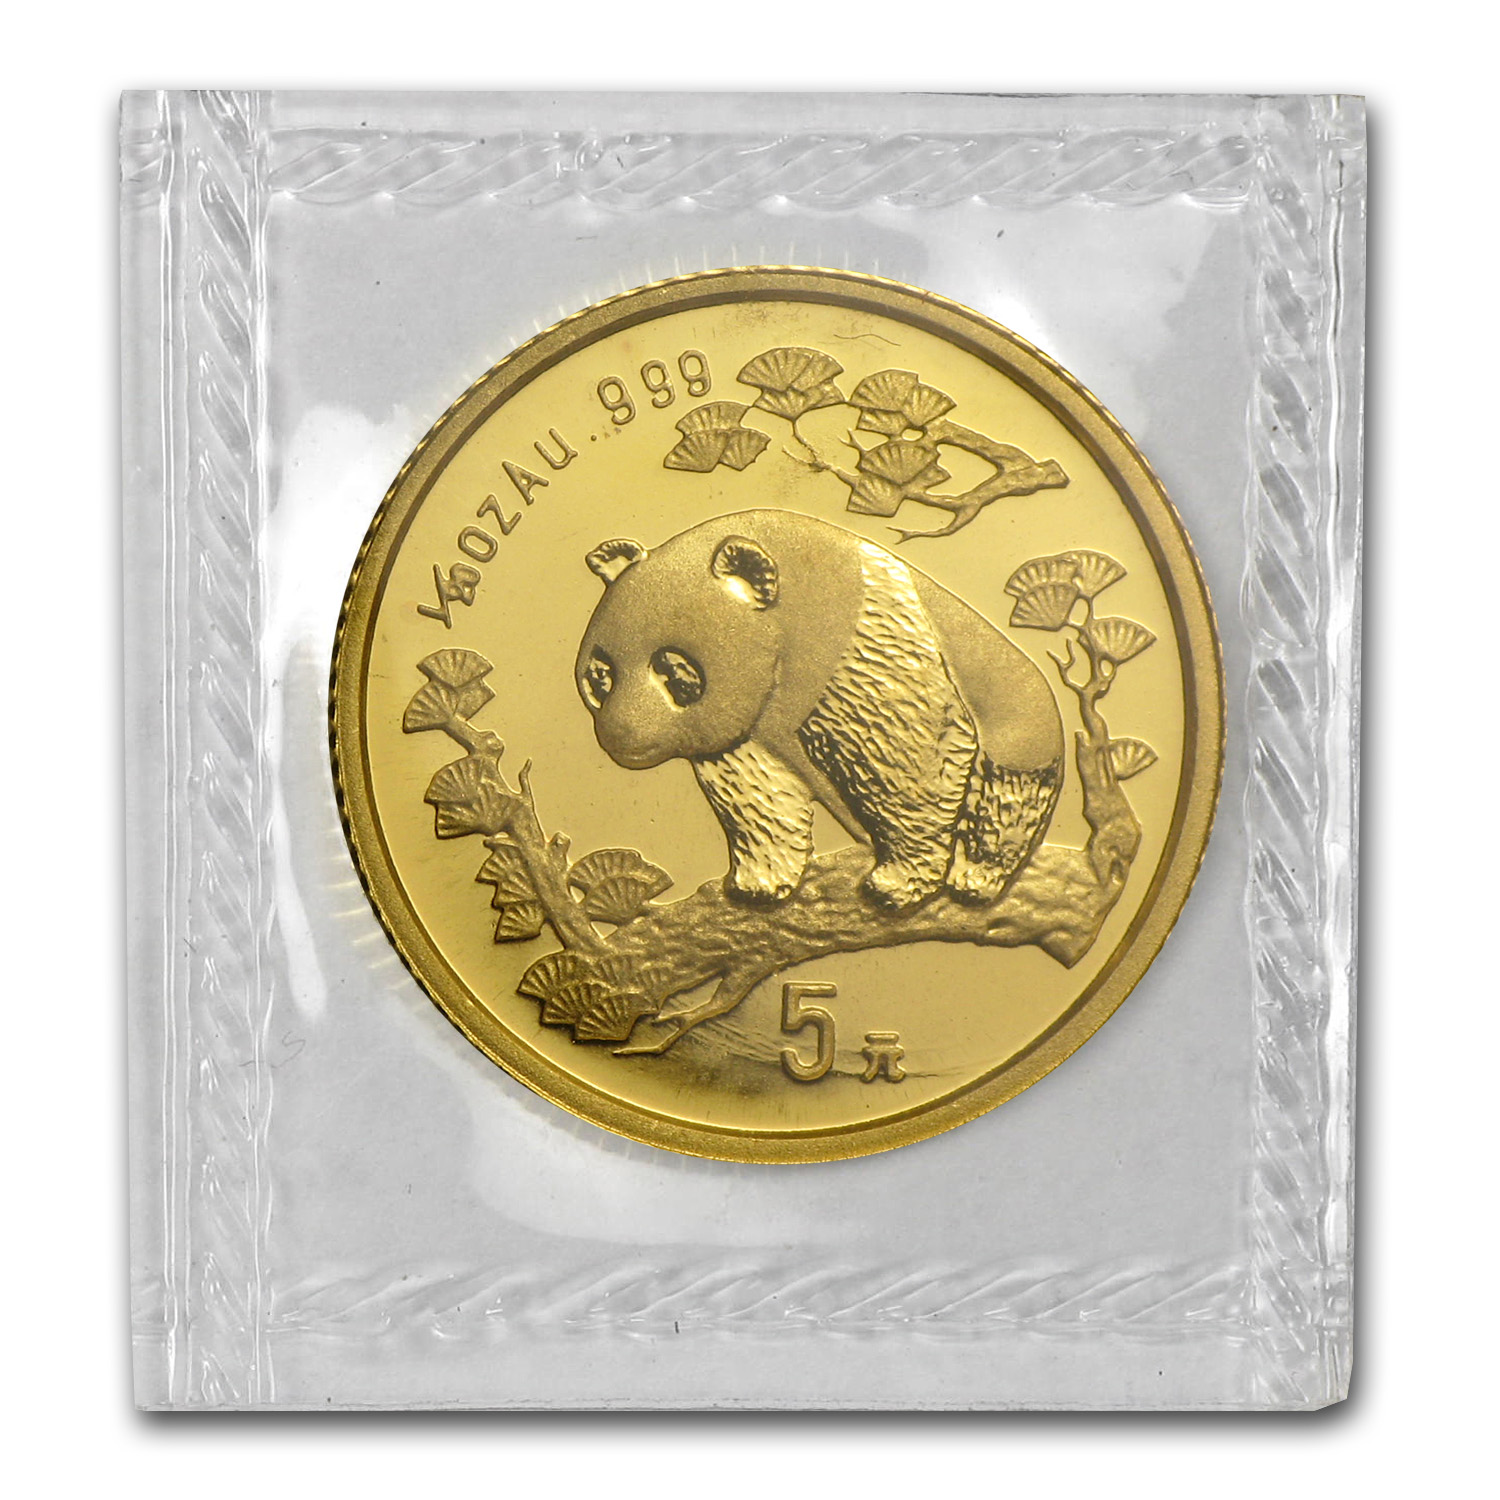 1997 (1/20 oz) Gold Chinese Pandas - Large Date (Sealed)